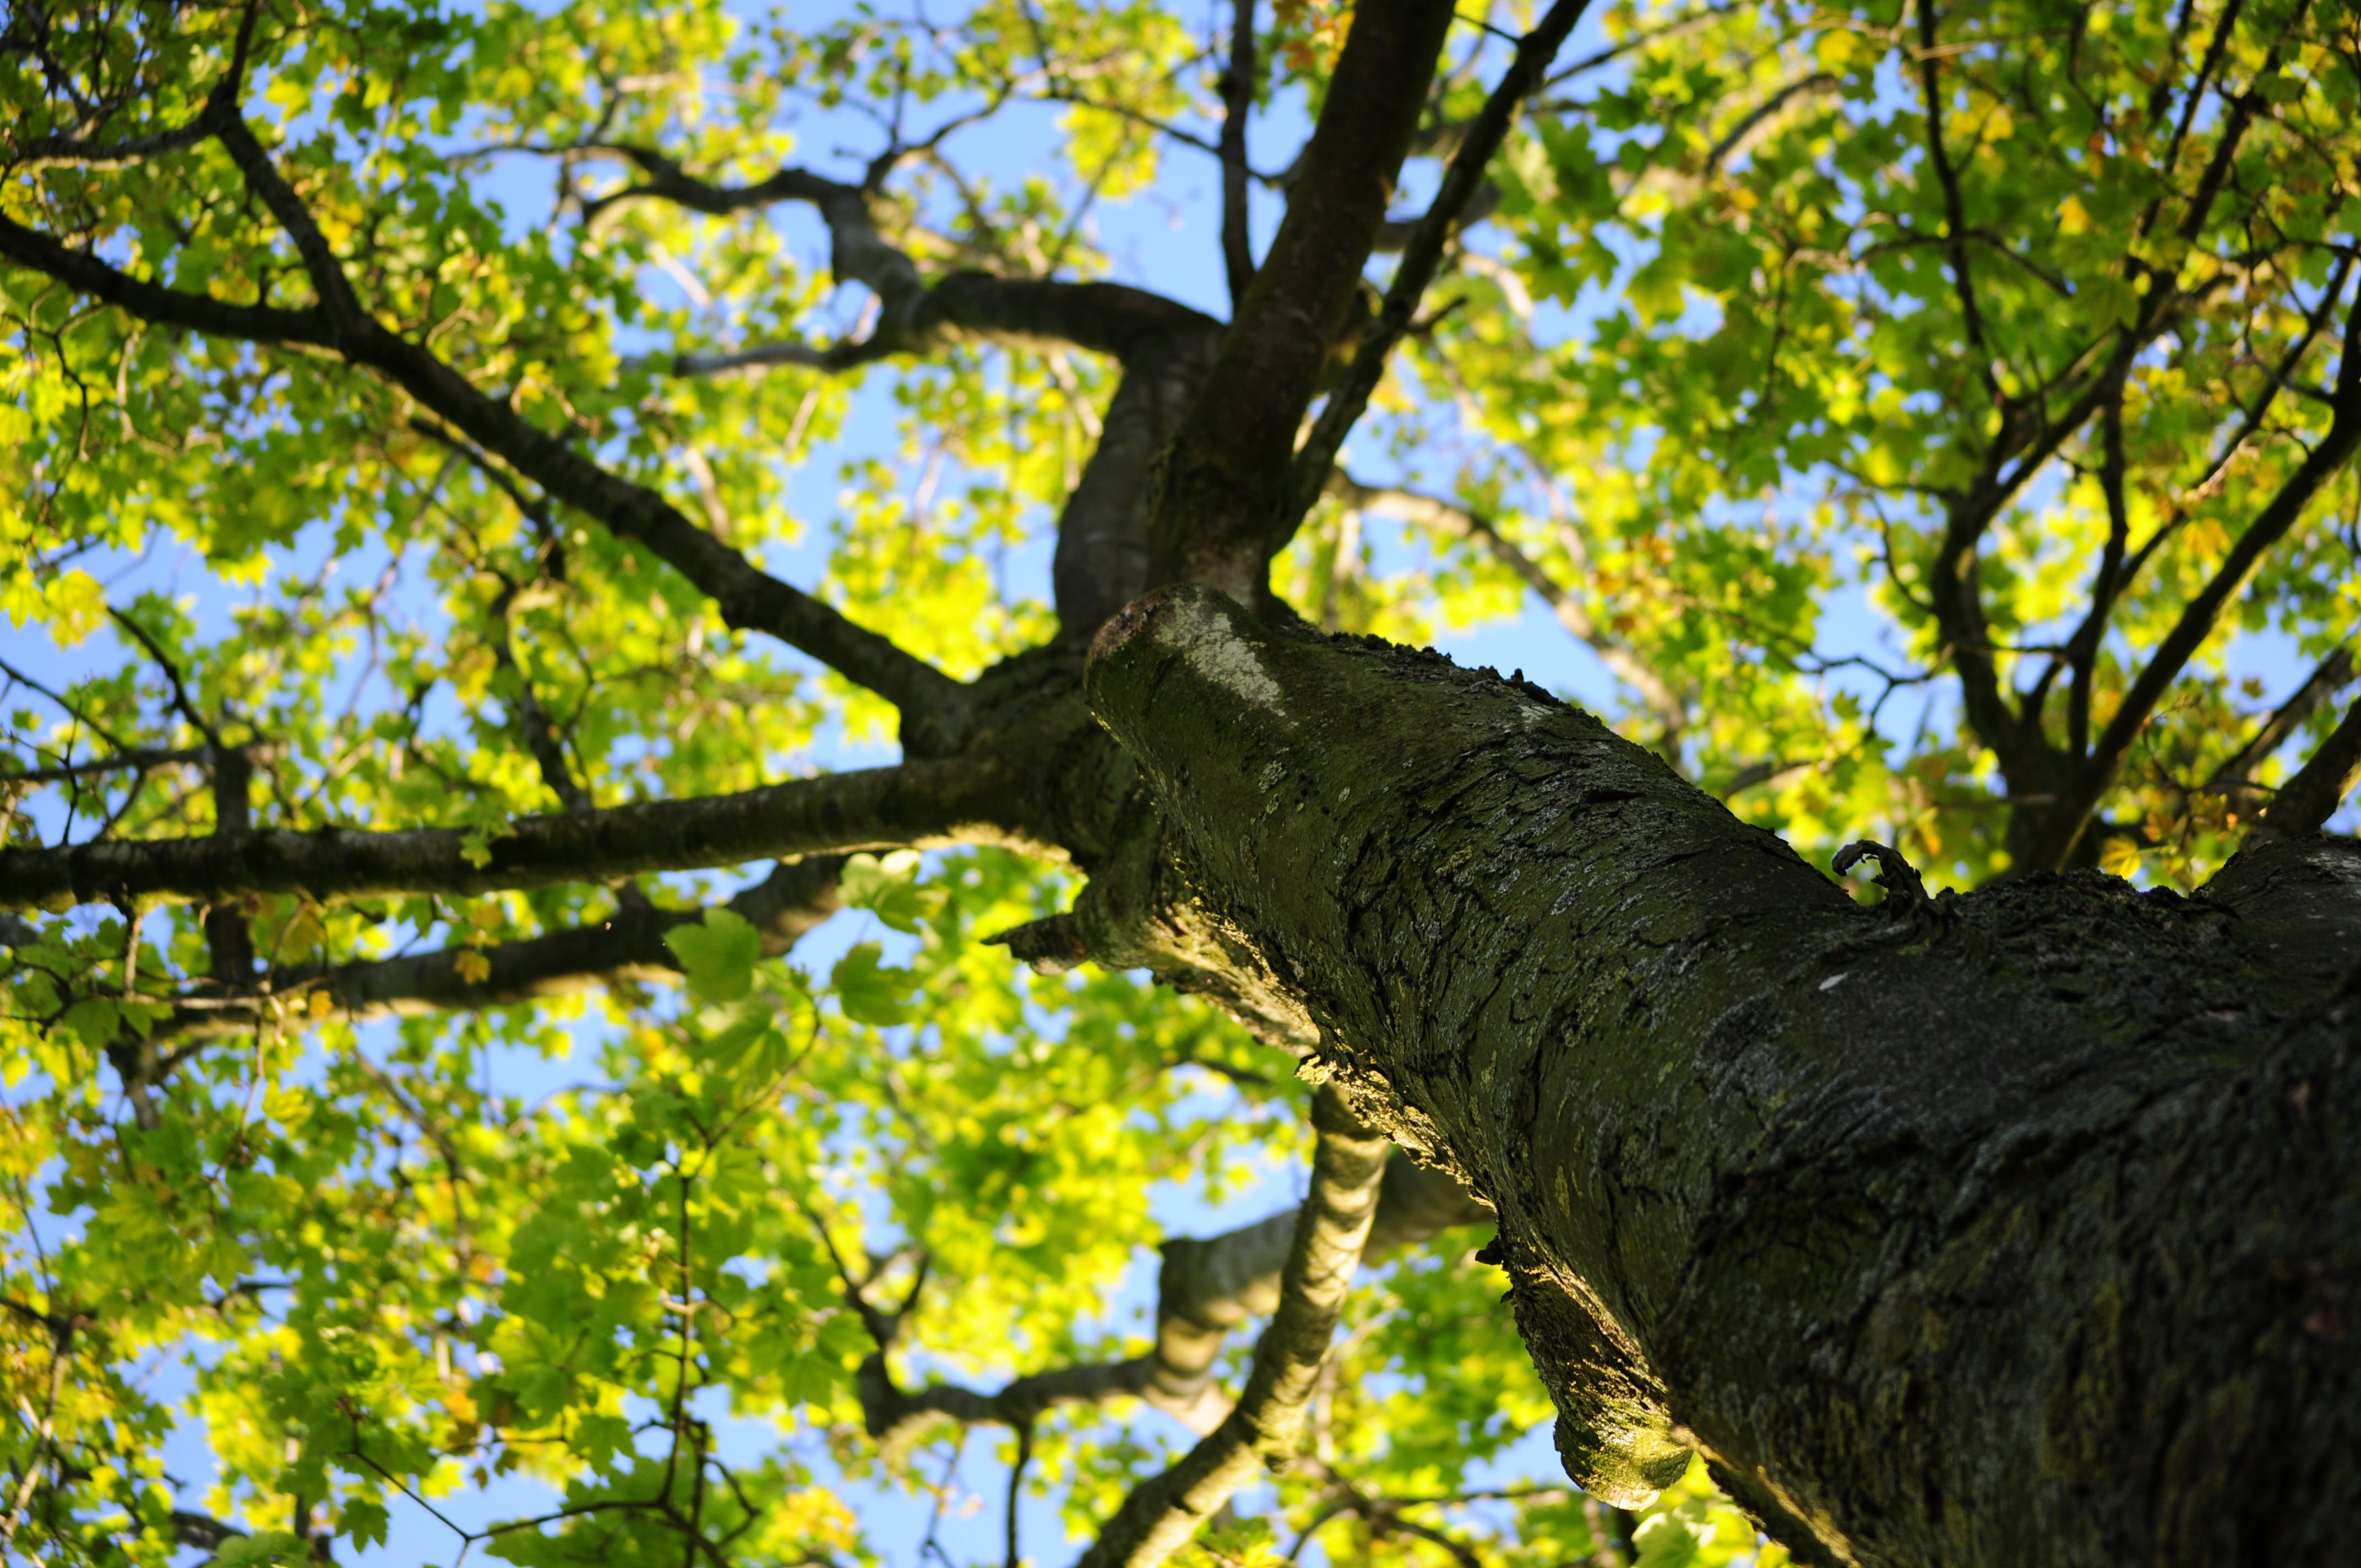 Low-angle Photo of Green Leafed Tree